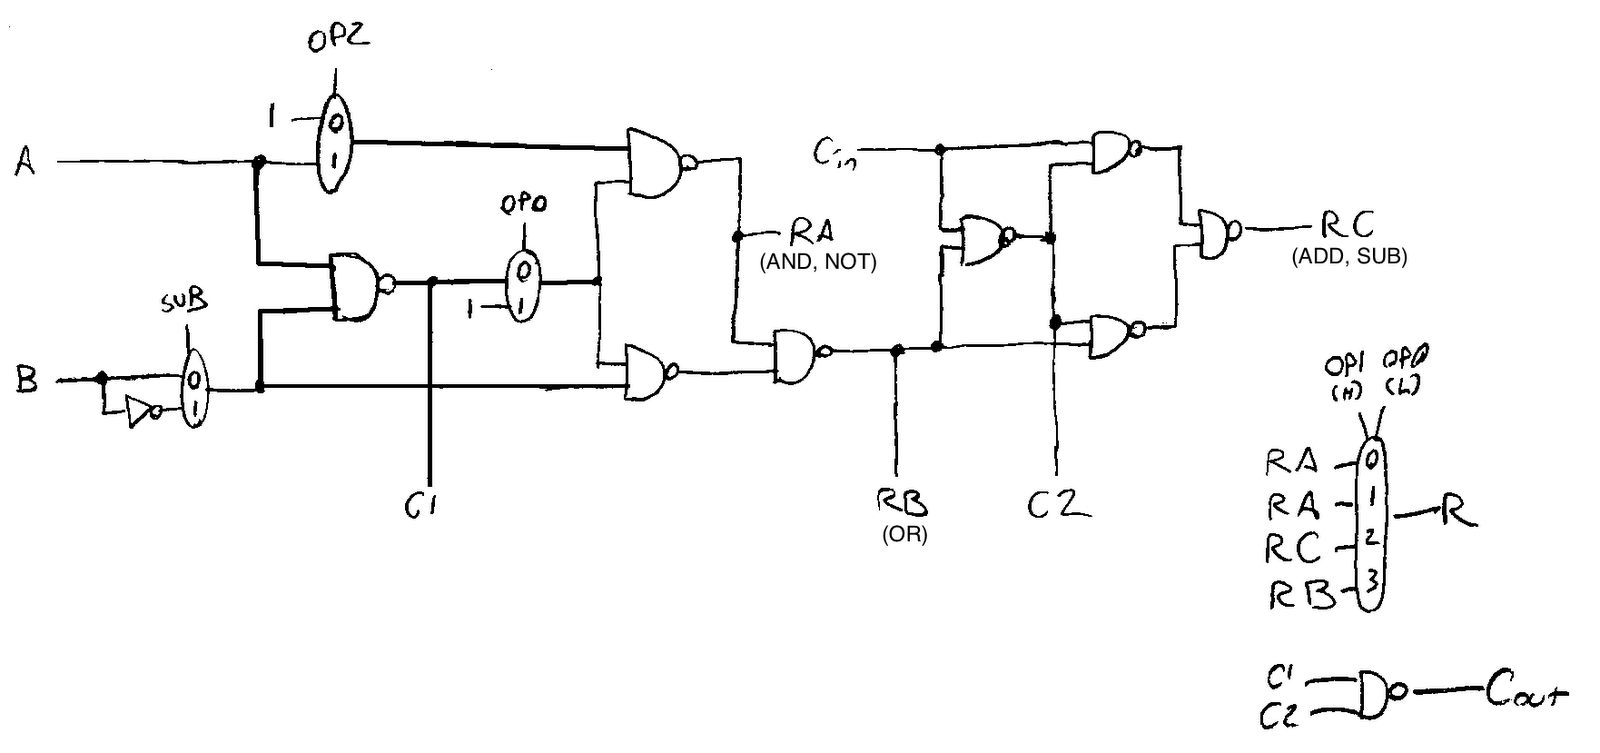 The circuit for a typical bit is best described as a modified full adder.  These modifications, which are necessary to support five operations (ADD,  SUB, ...